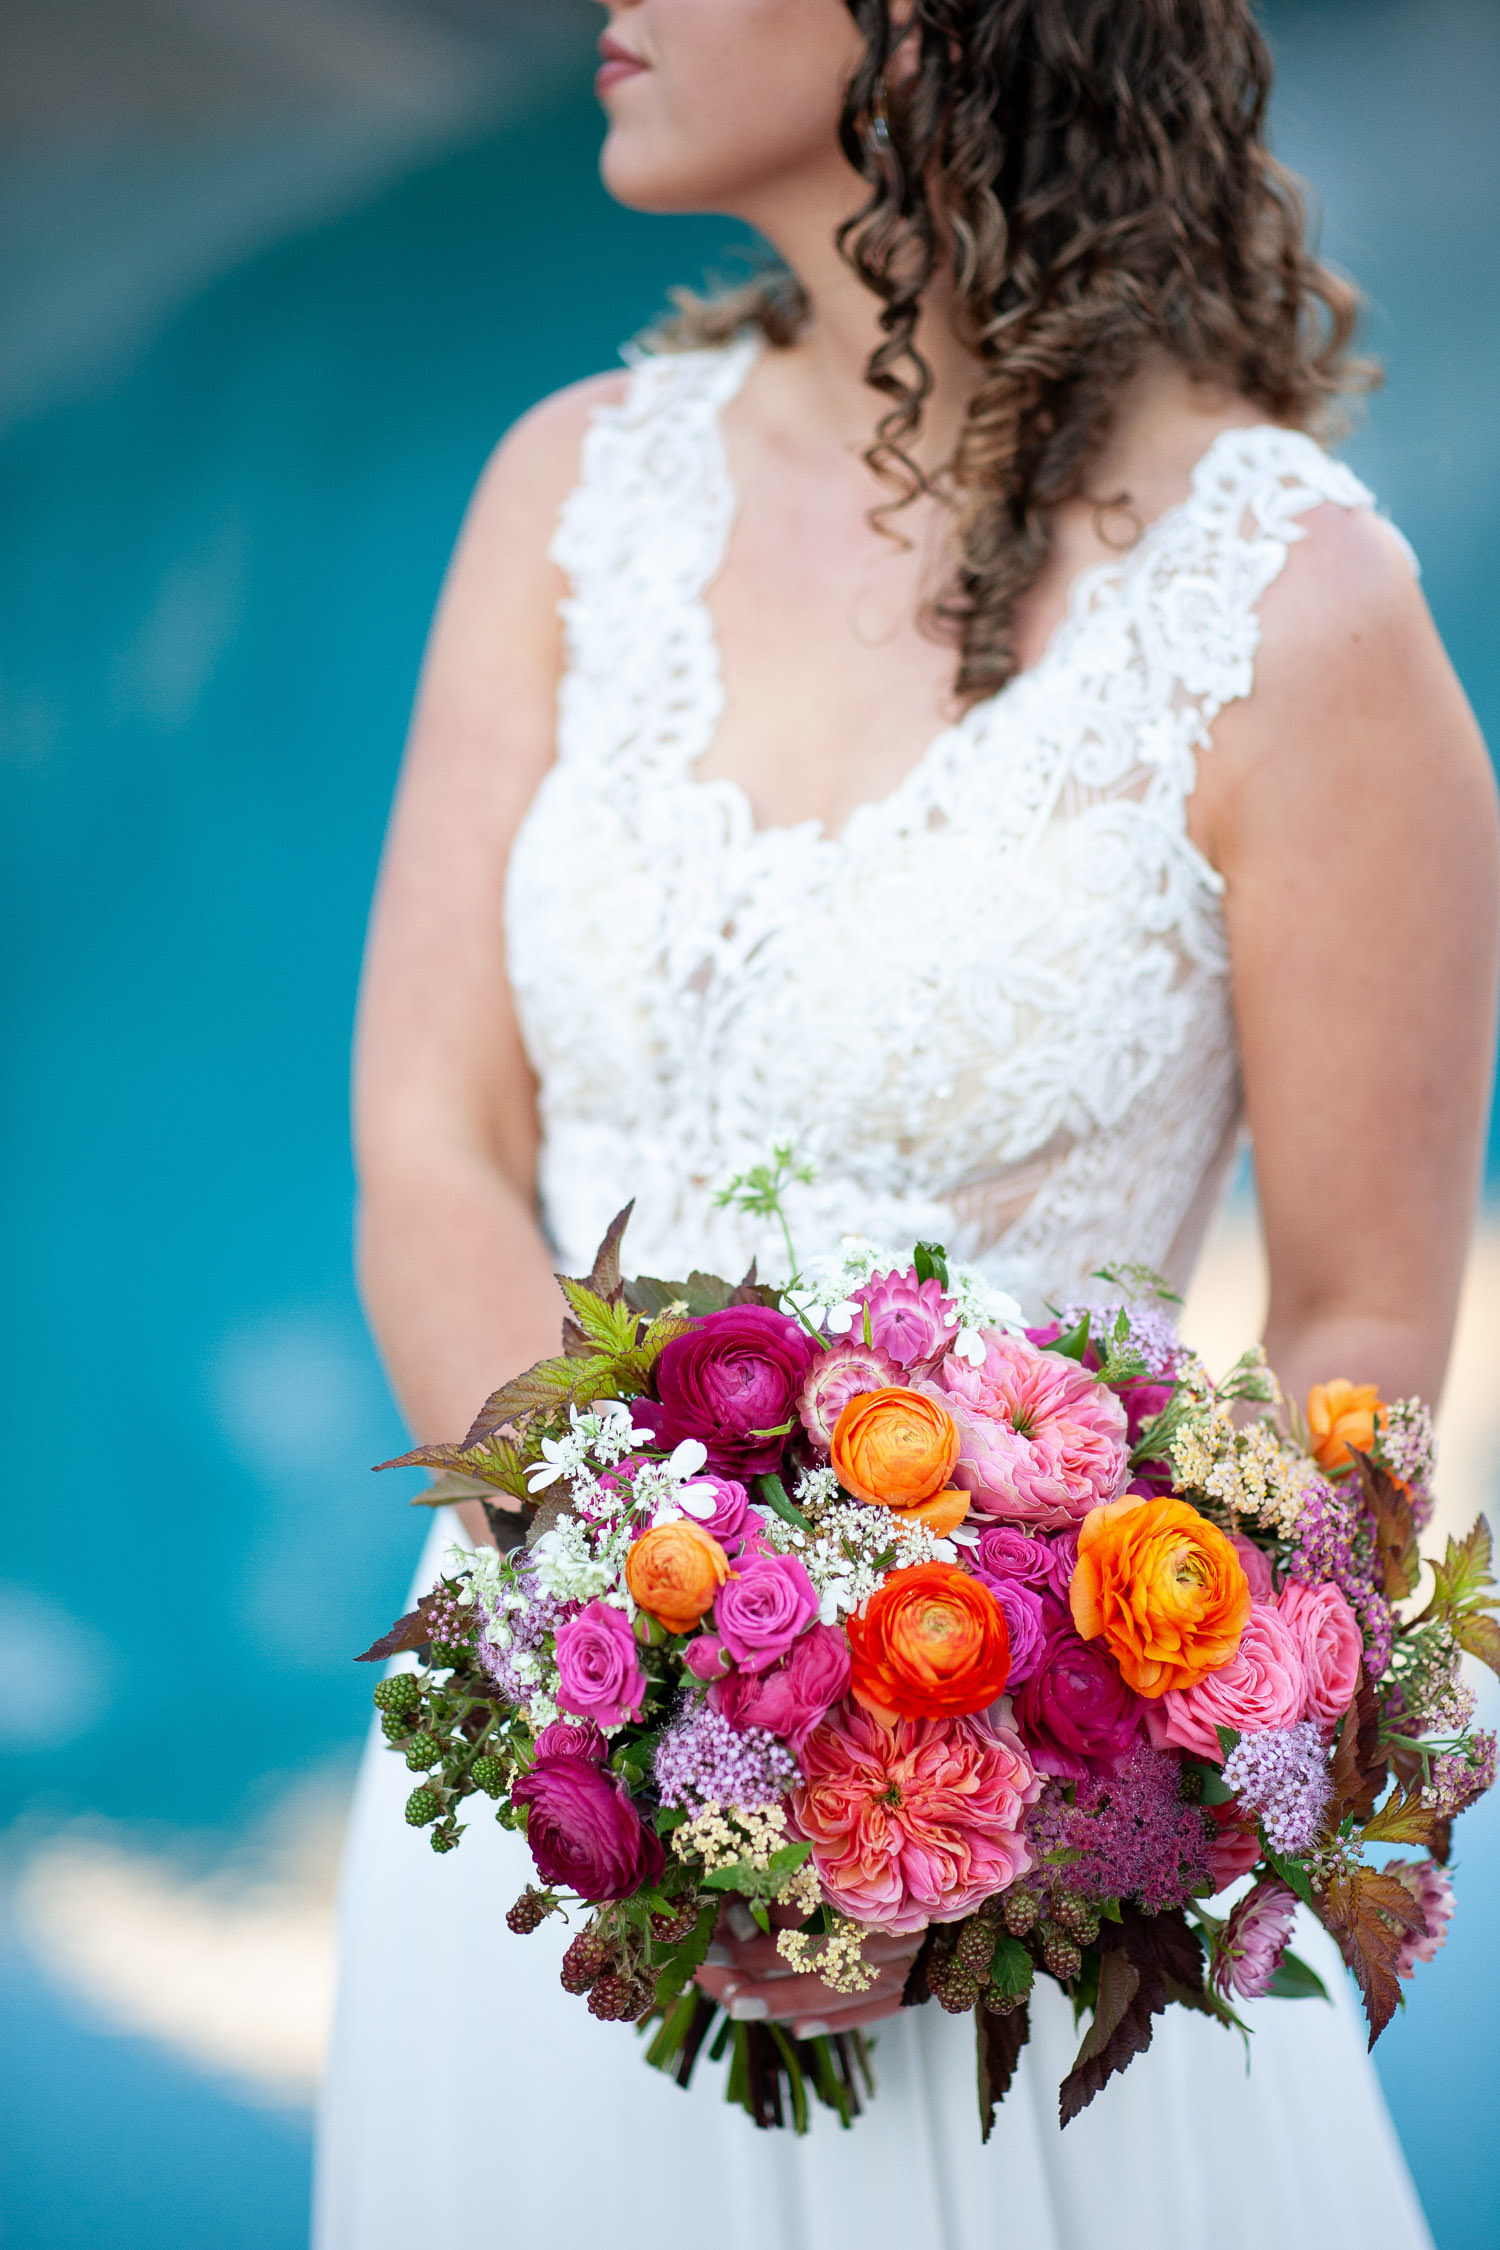 bride with her colorful bouquet from Flowers by Janie captured by Tara Whittaker Photography